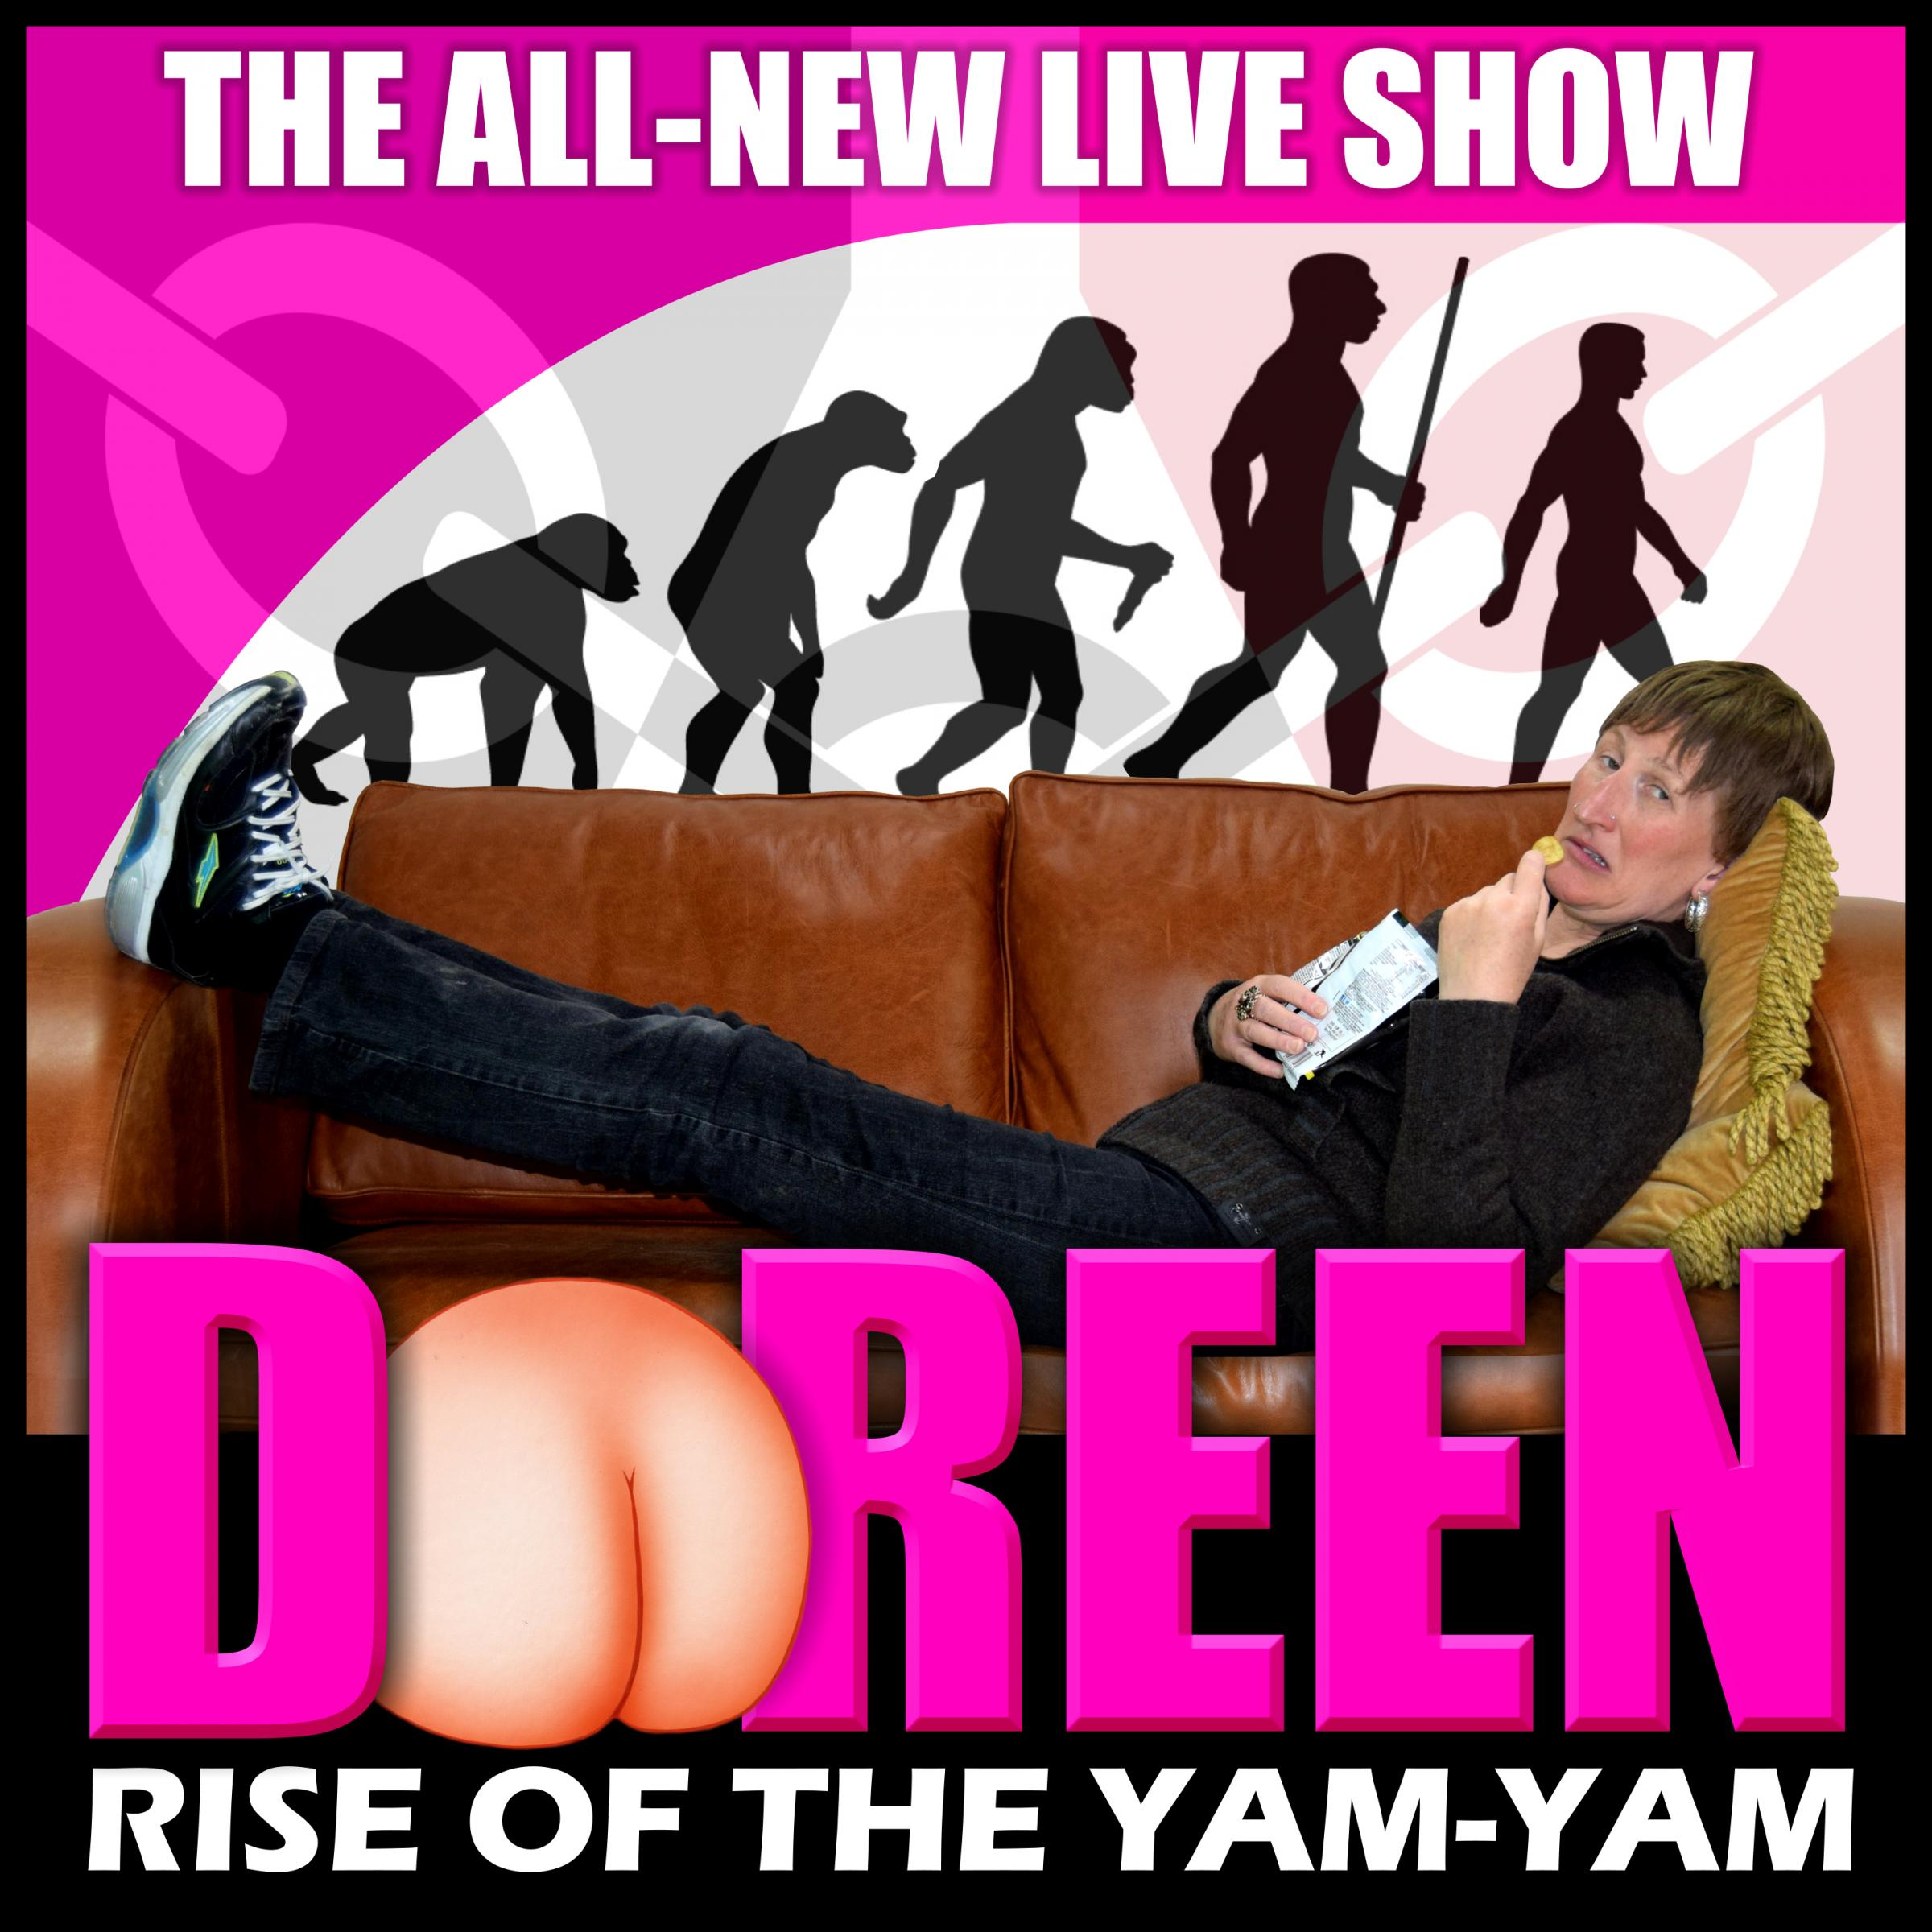 Doreen - Rise of the Yam-Yam